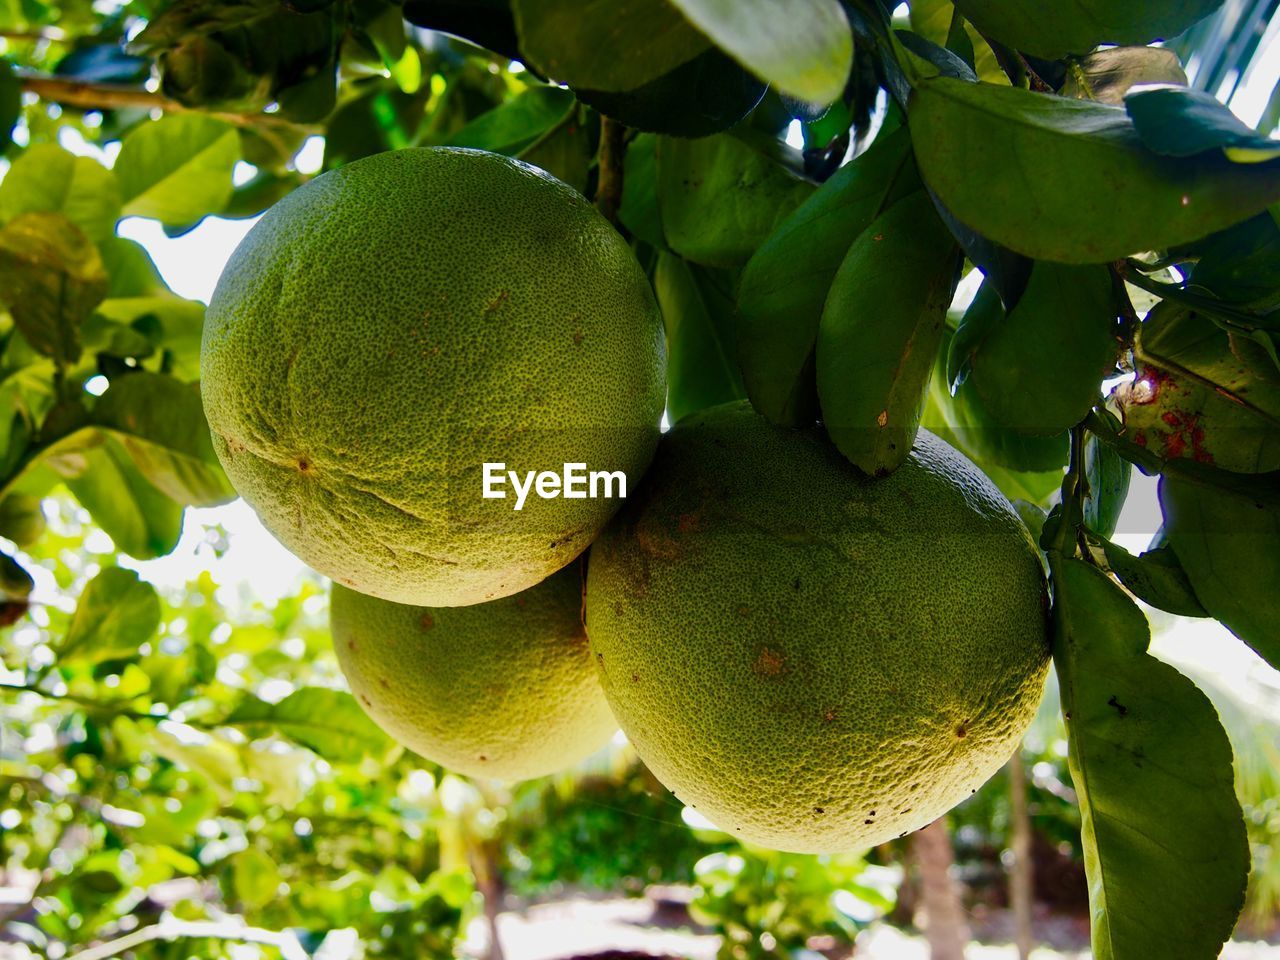 fruit, healthy eating, food and drink, food, freshness, wellbeing, green color, plant, growth, tree, focus on foreground, close-up, hanging, nature, no people, leaf, day, plant part, low angle view, fruit tree, outdoors, ripe